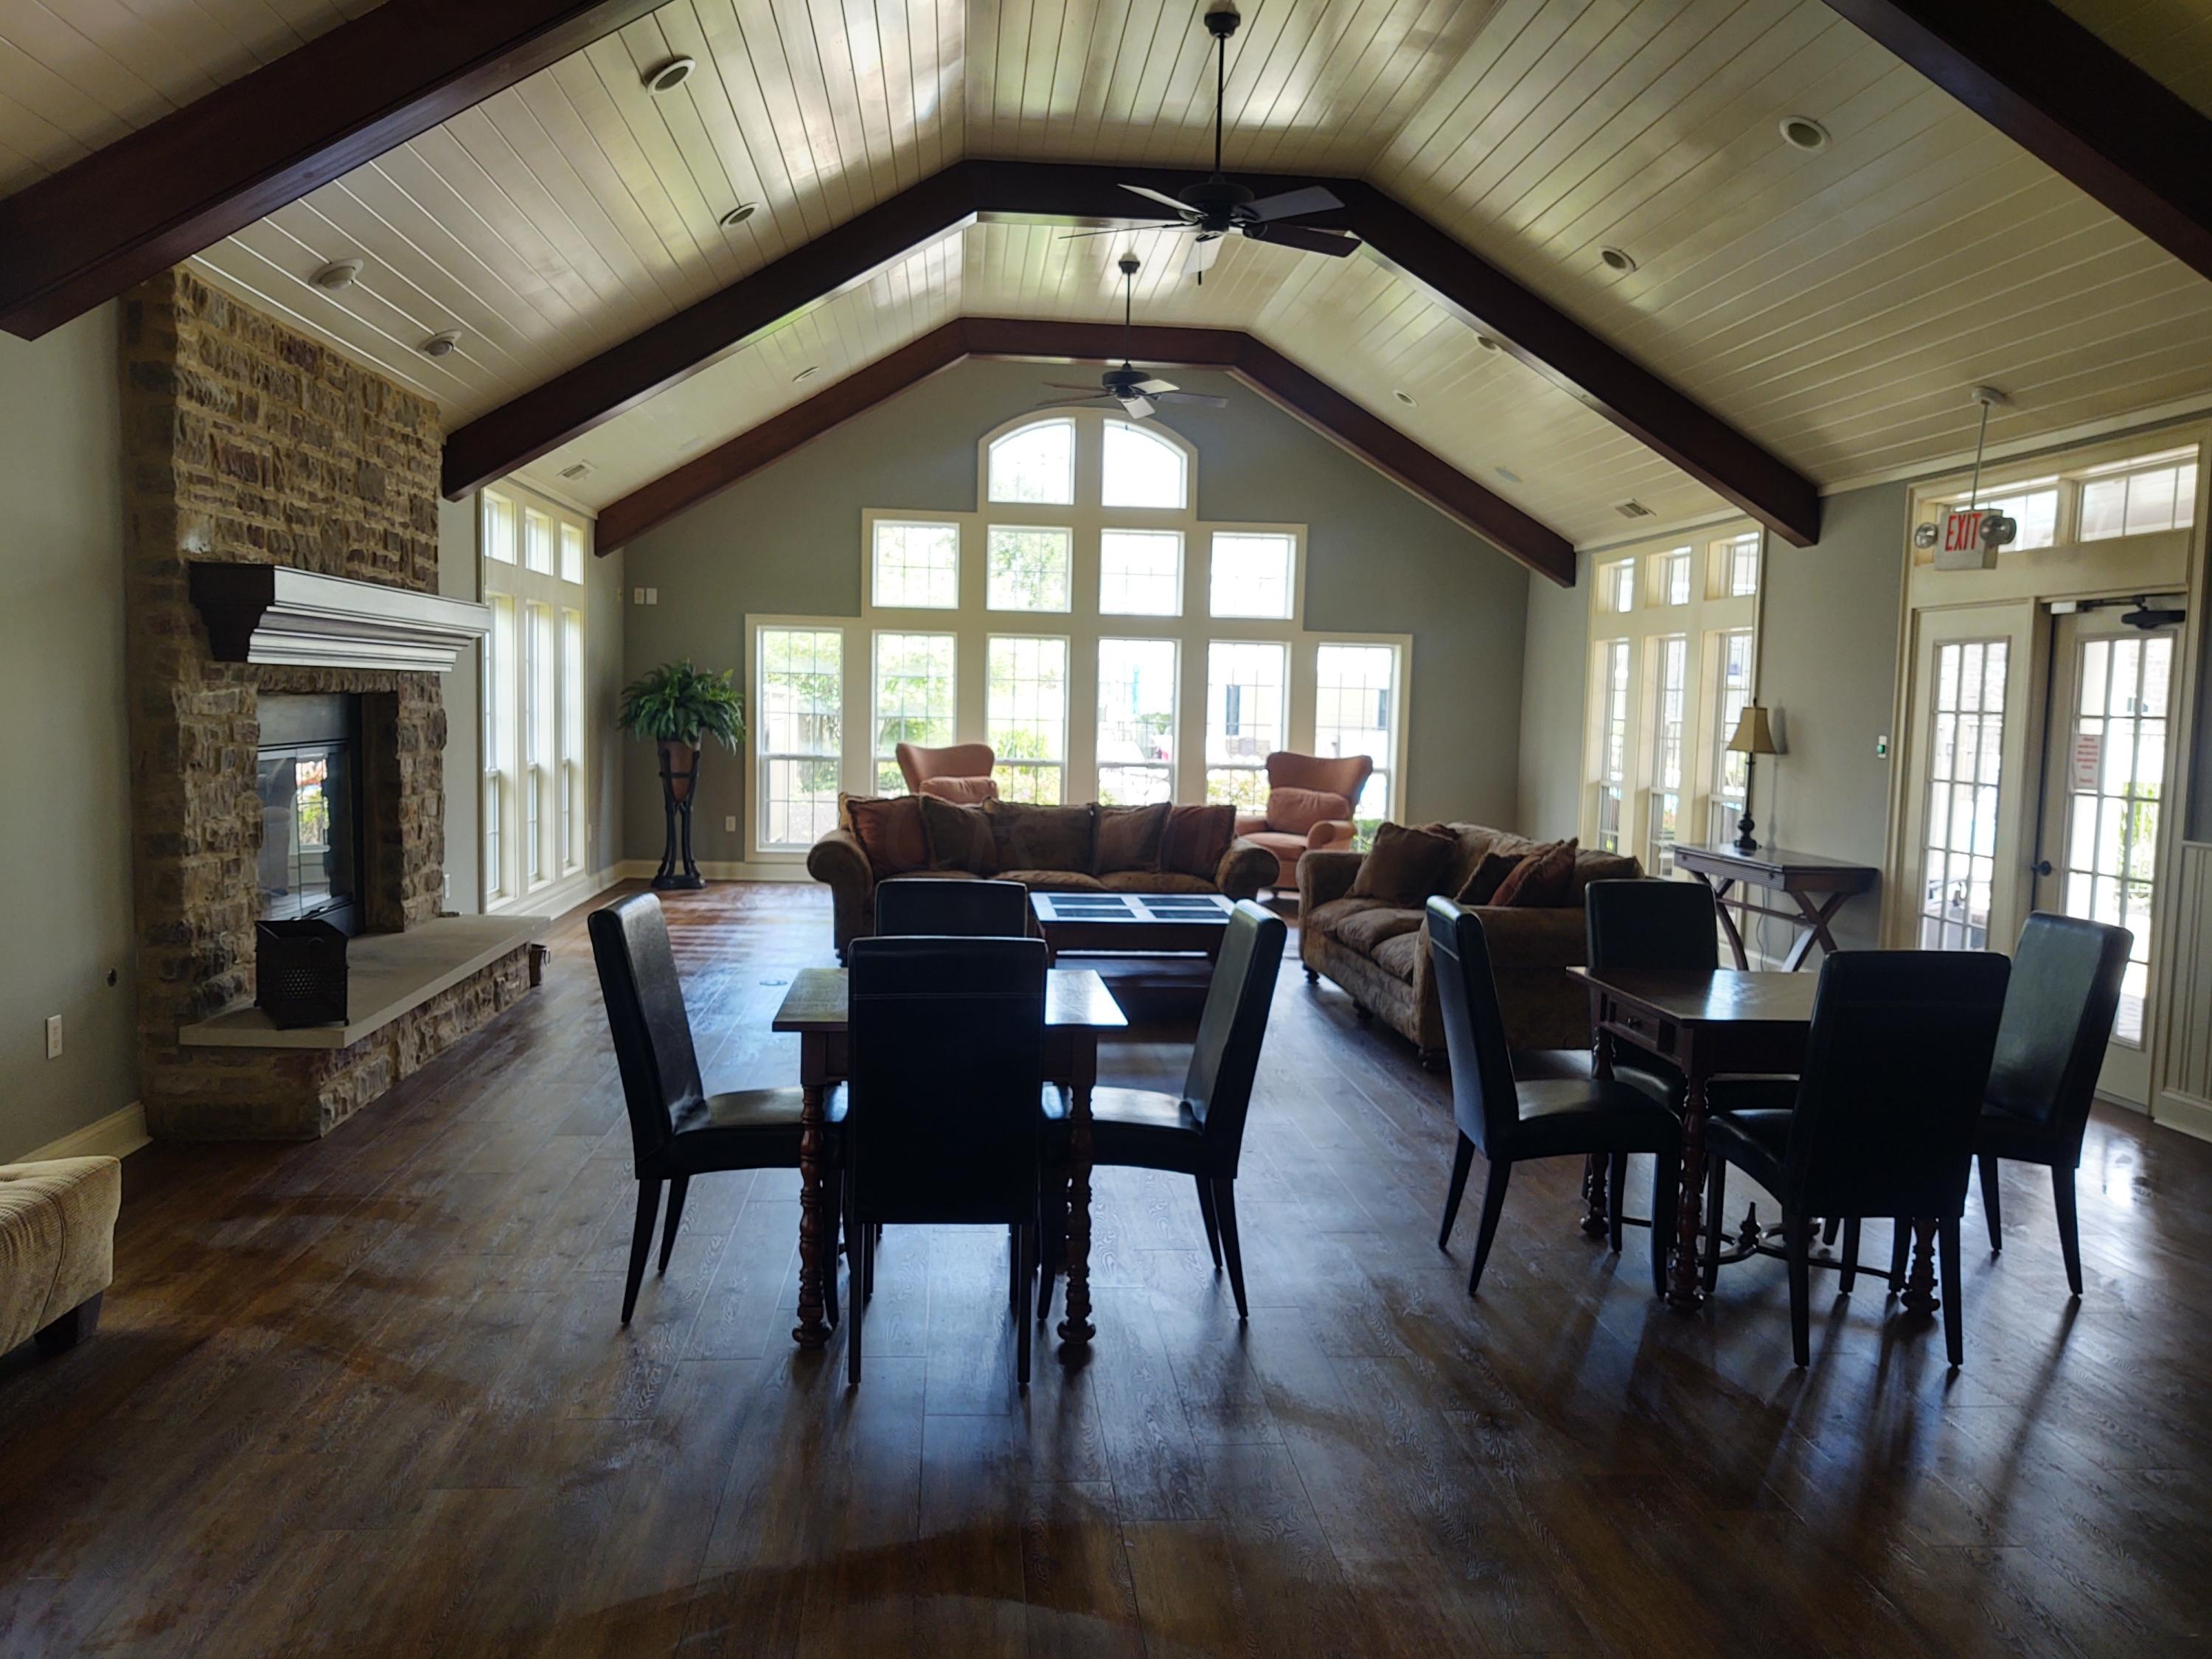 Clubhouse, Main Room